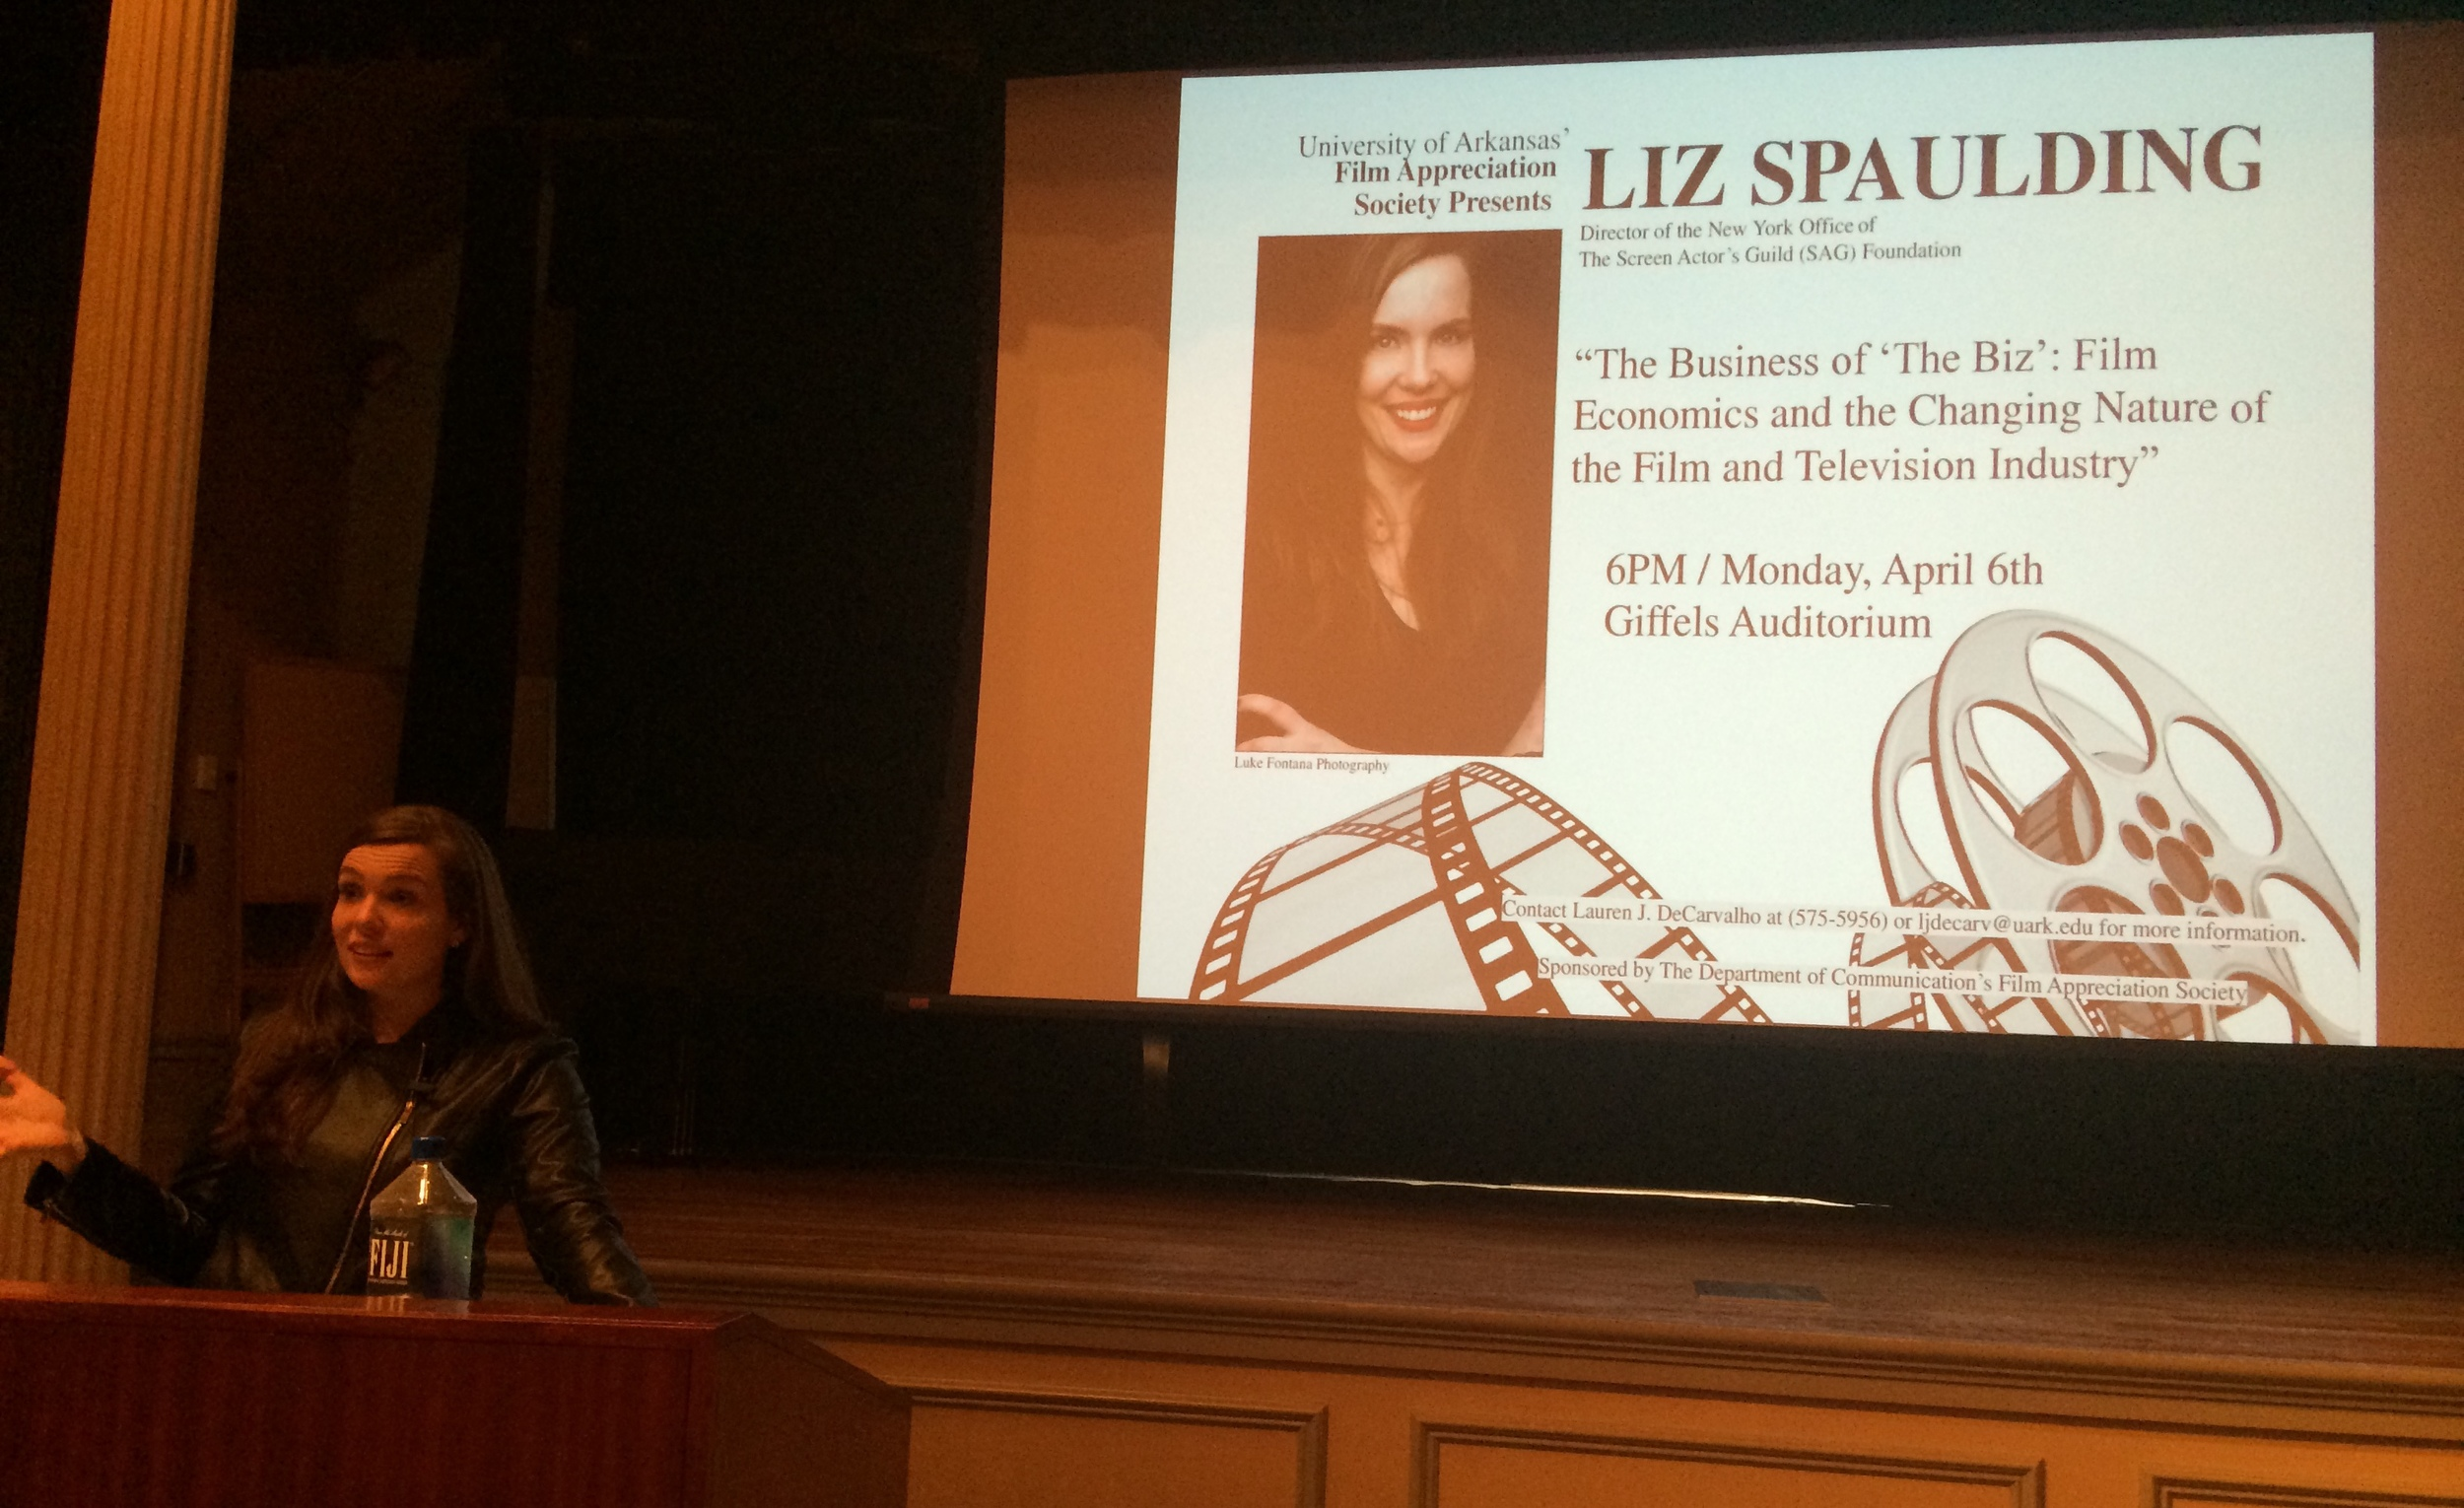 """Speaking about """"The Business of 'The Biz'"""" to the University of Arkansas'Film Appreciation Society in Fayetteville AK.April 6, 2015."""